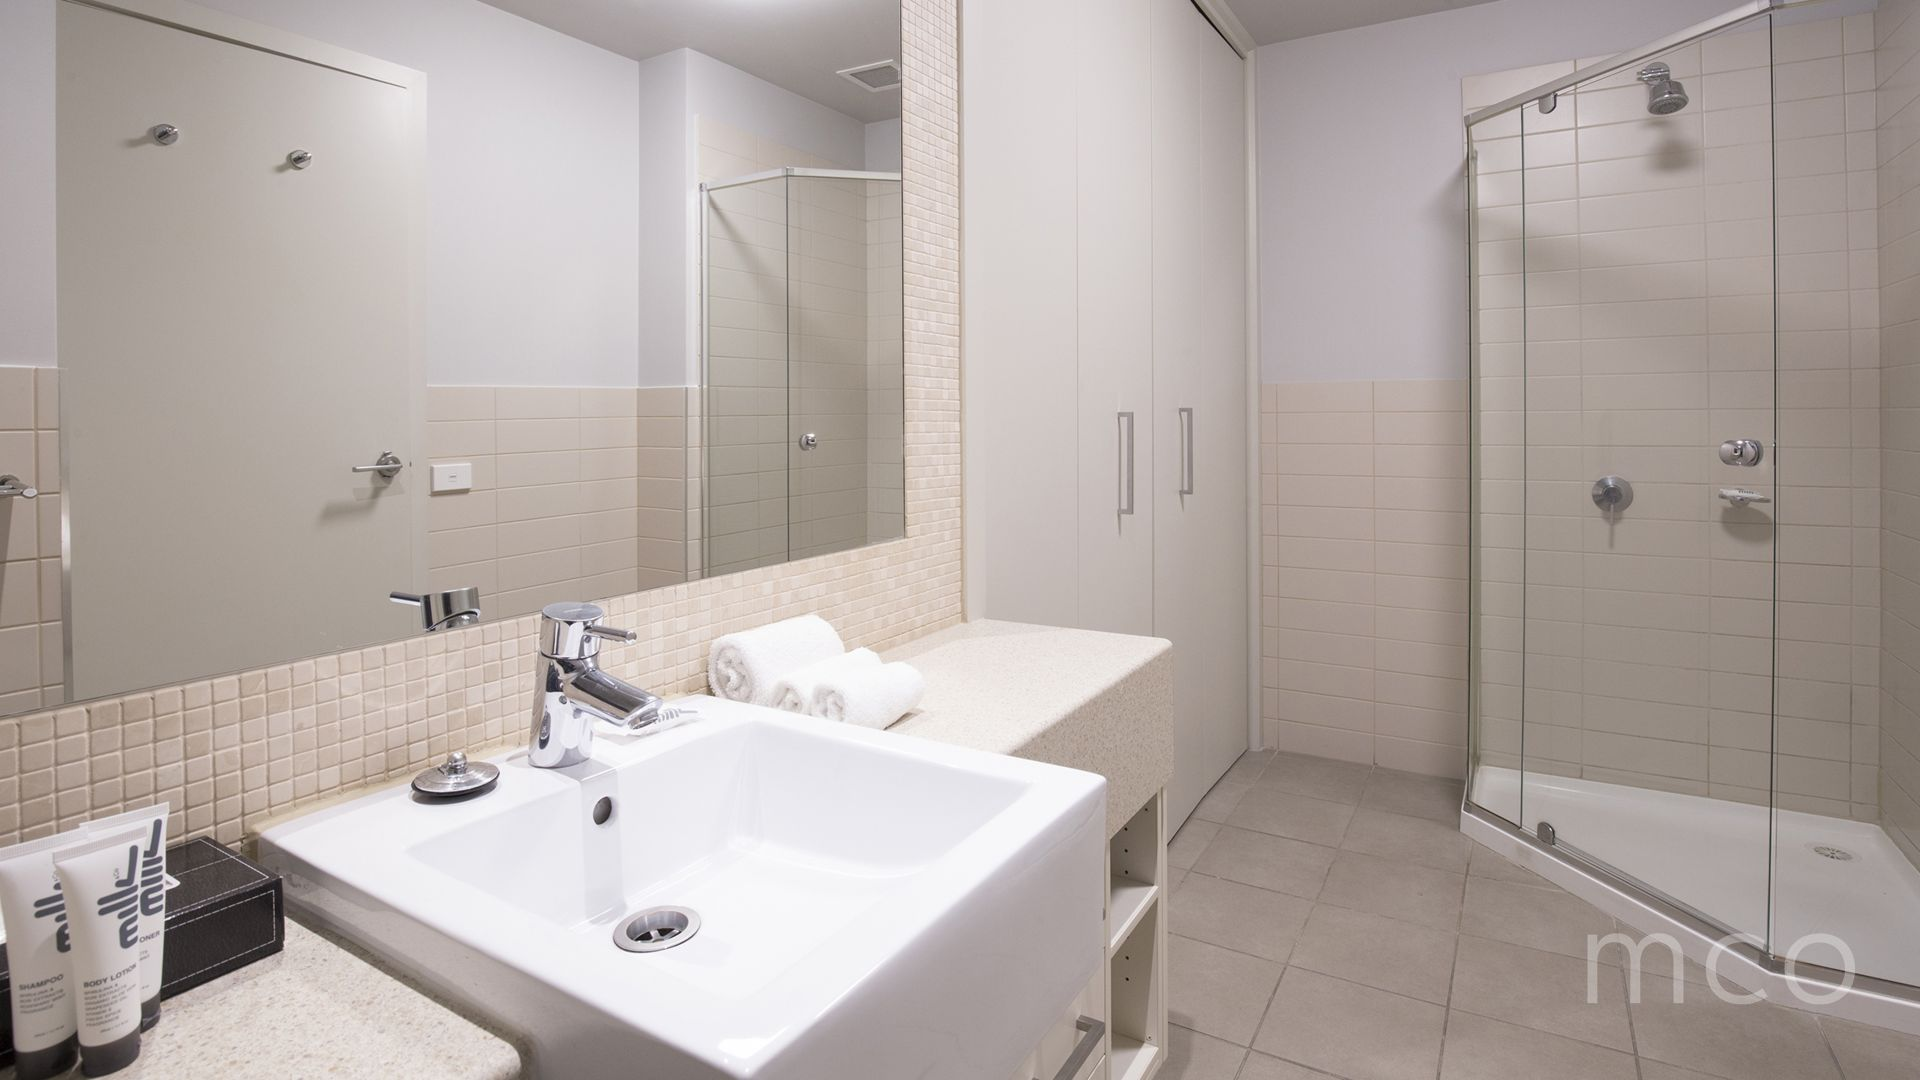 Sought after investment opportunity not to be missed in Glen Waverly!